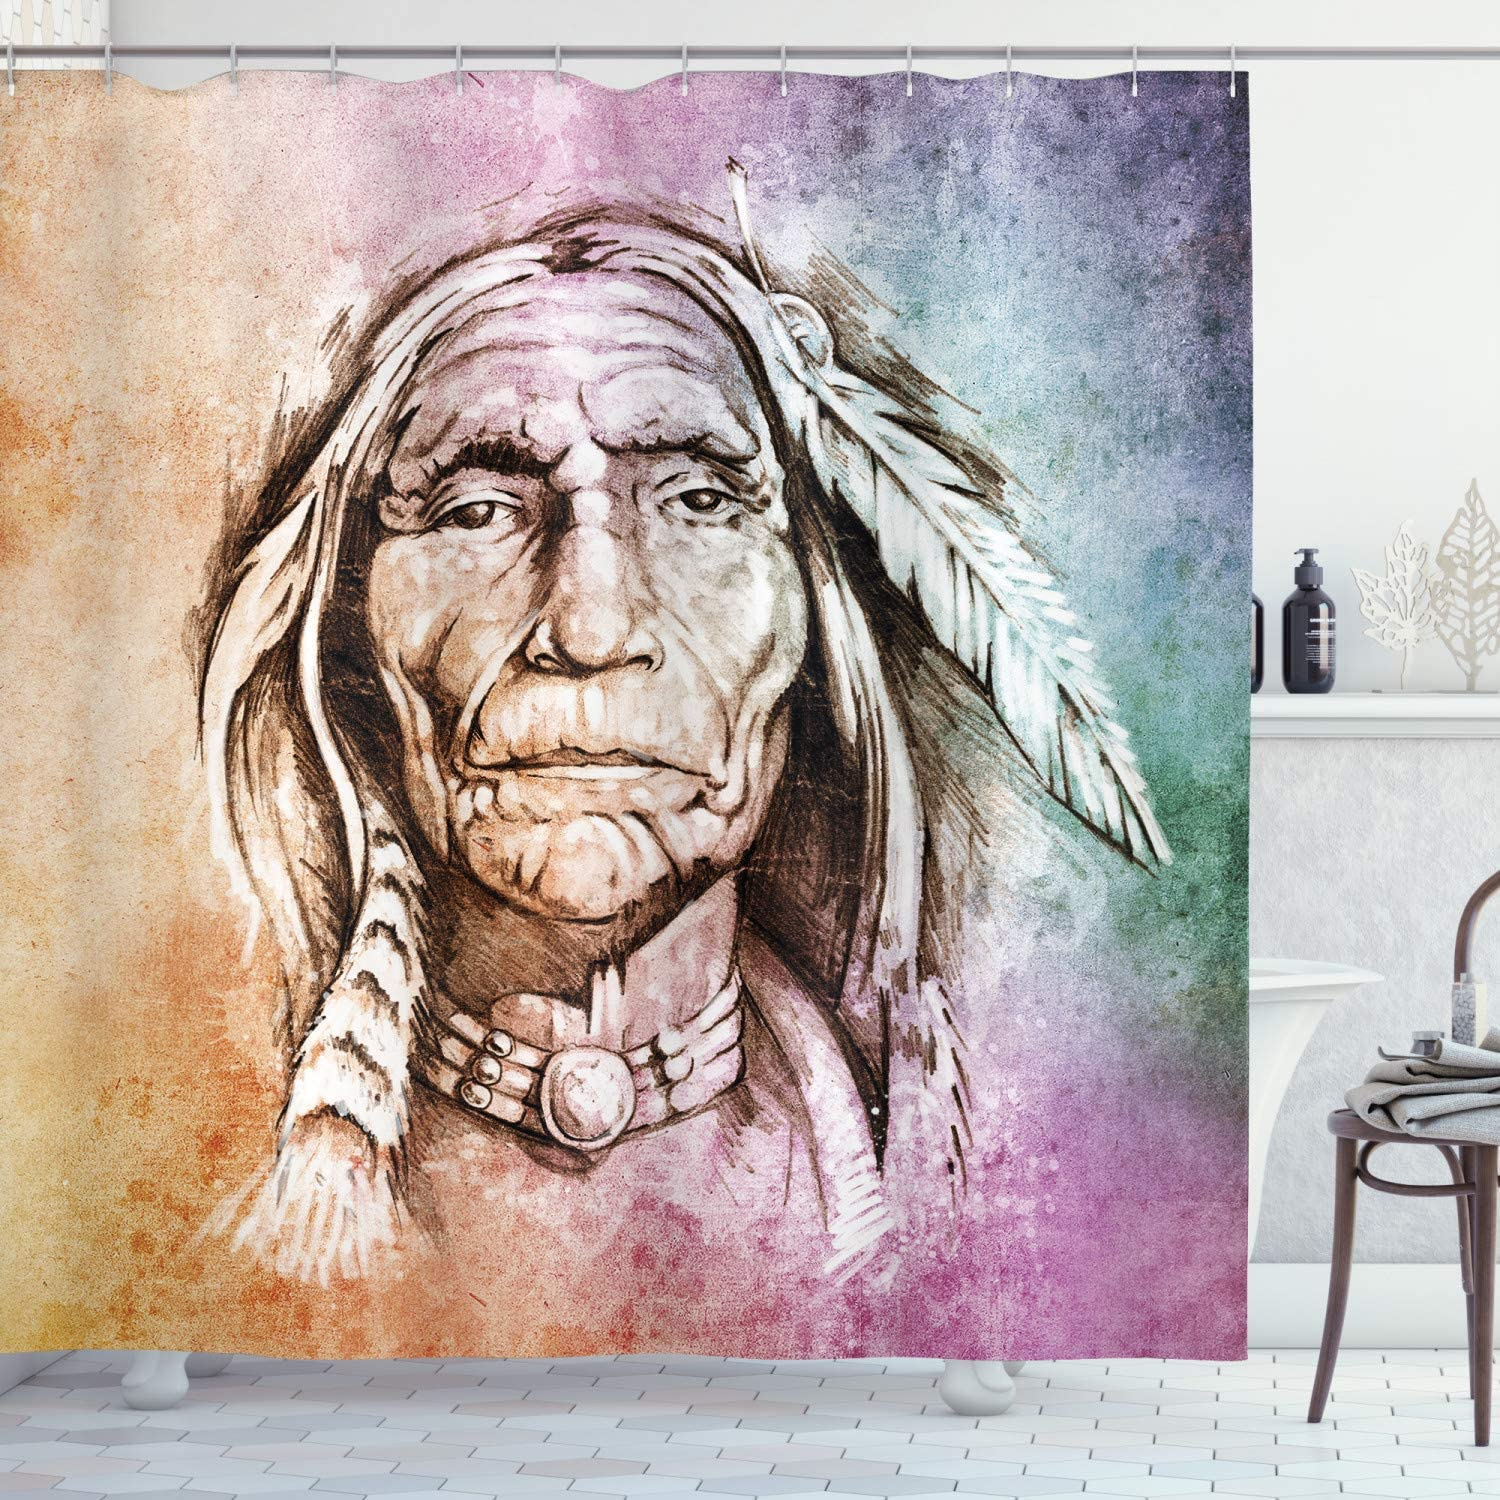 Ambesonne Colorful Shower Curtain, Portrait of Chief with Feather Band Watercolor Style Image, Cloth Fabric Bathroom Decor Set with Hooks, 84